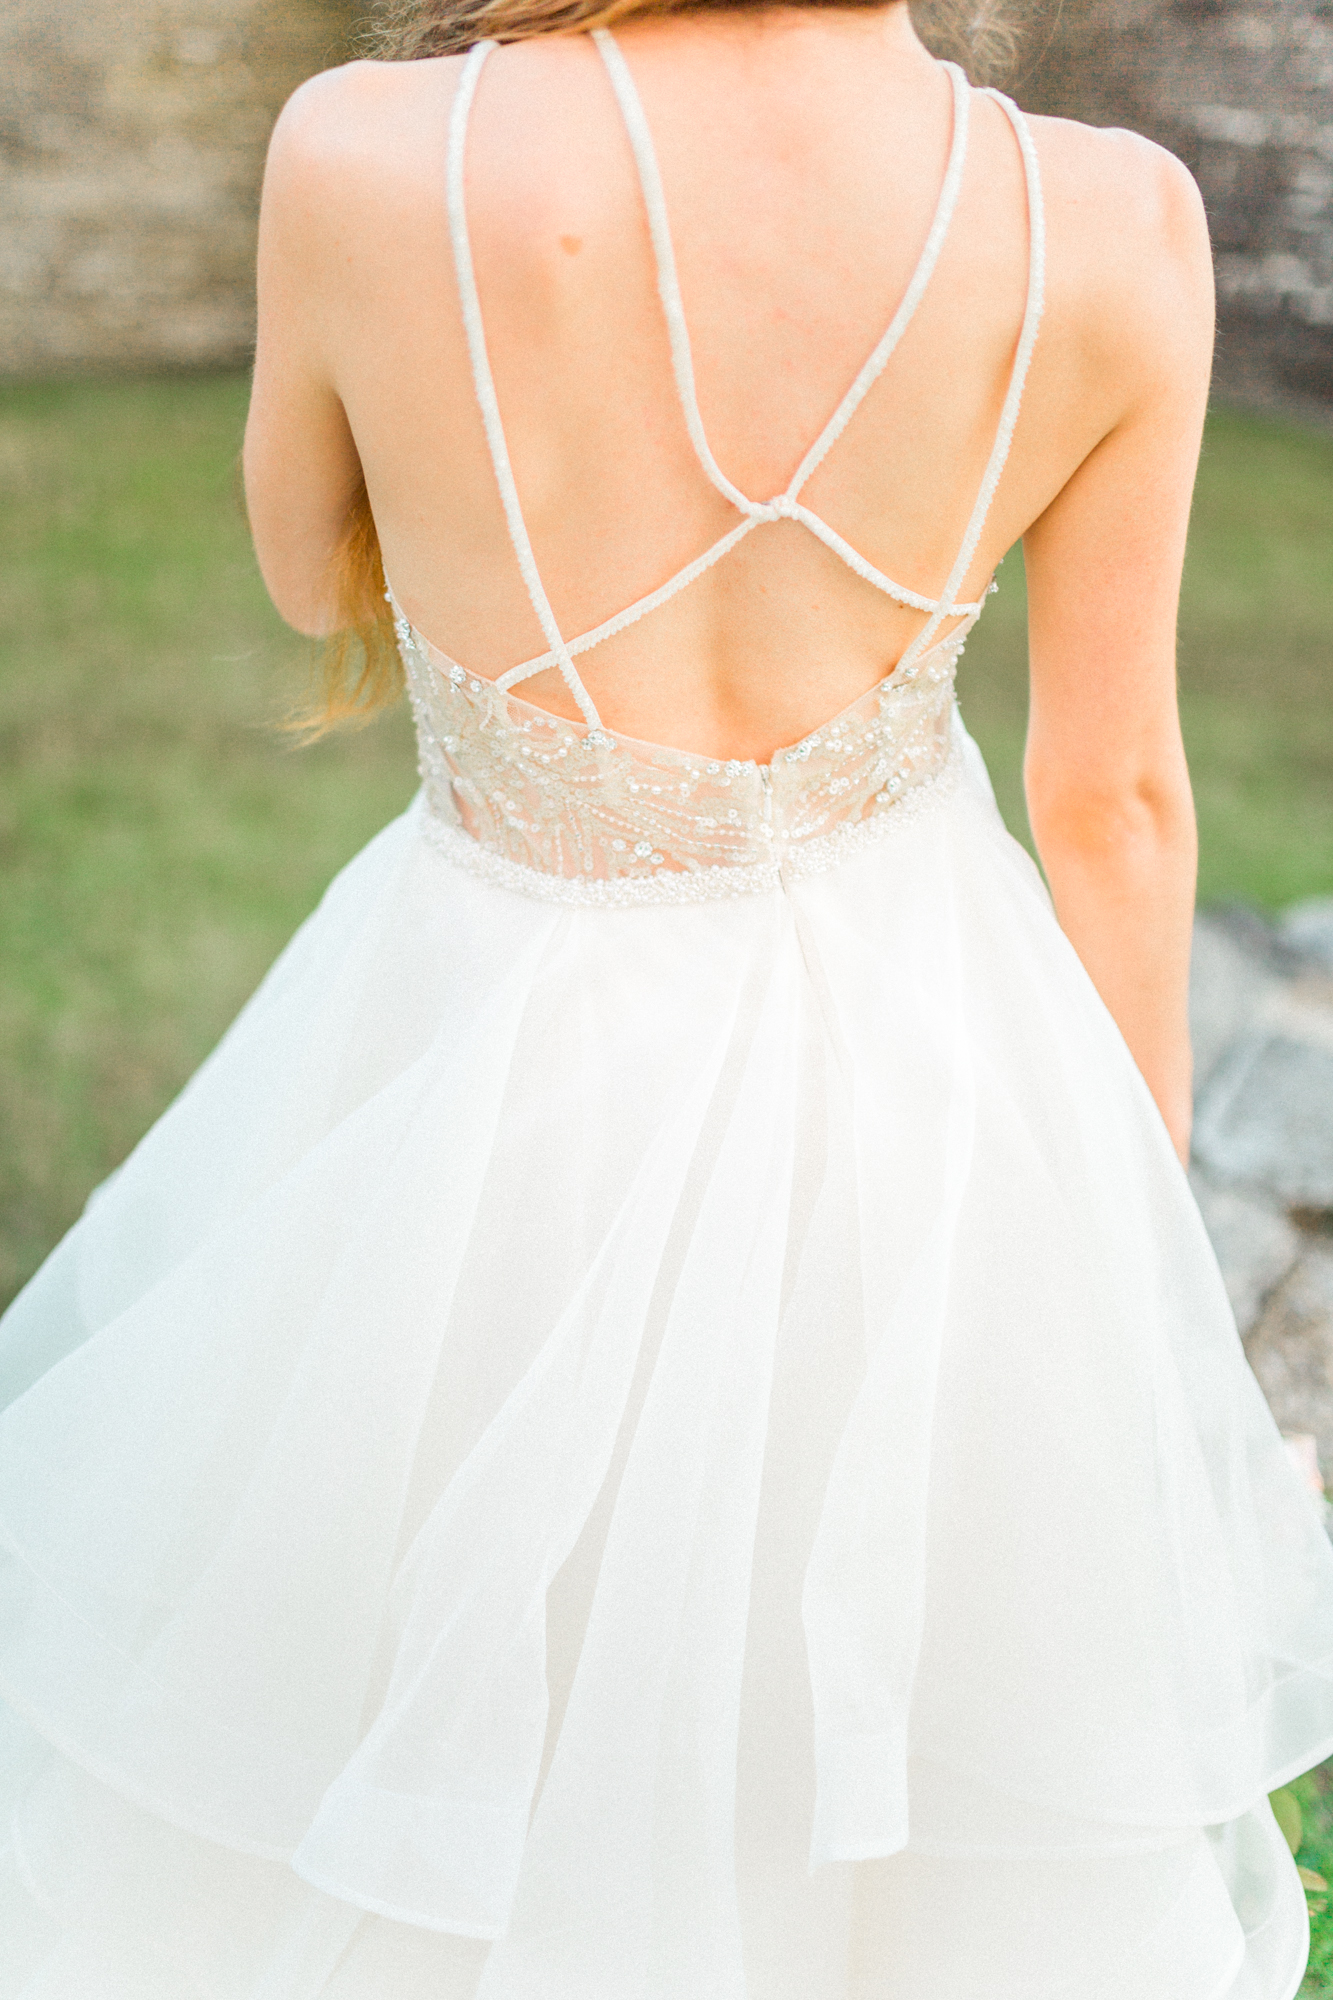 St. augustine, castillo de san marcos styled wedding bridal photo, back of wedding dress